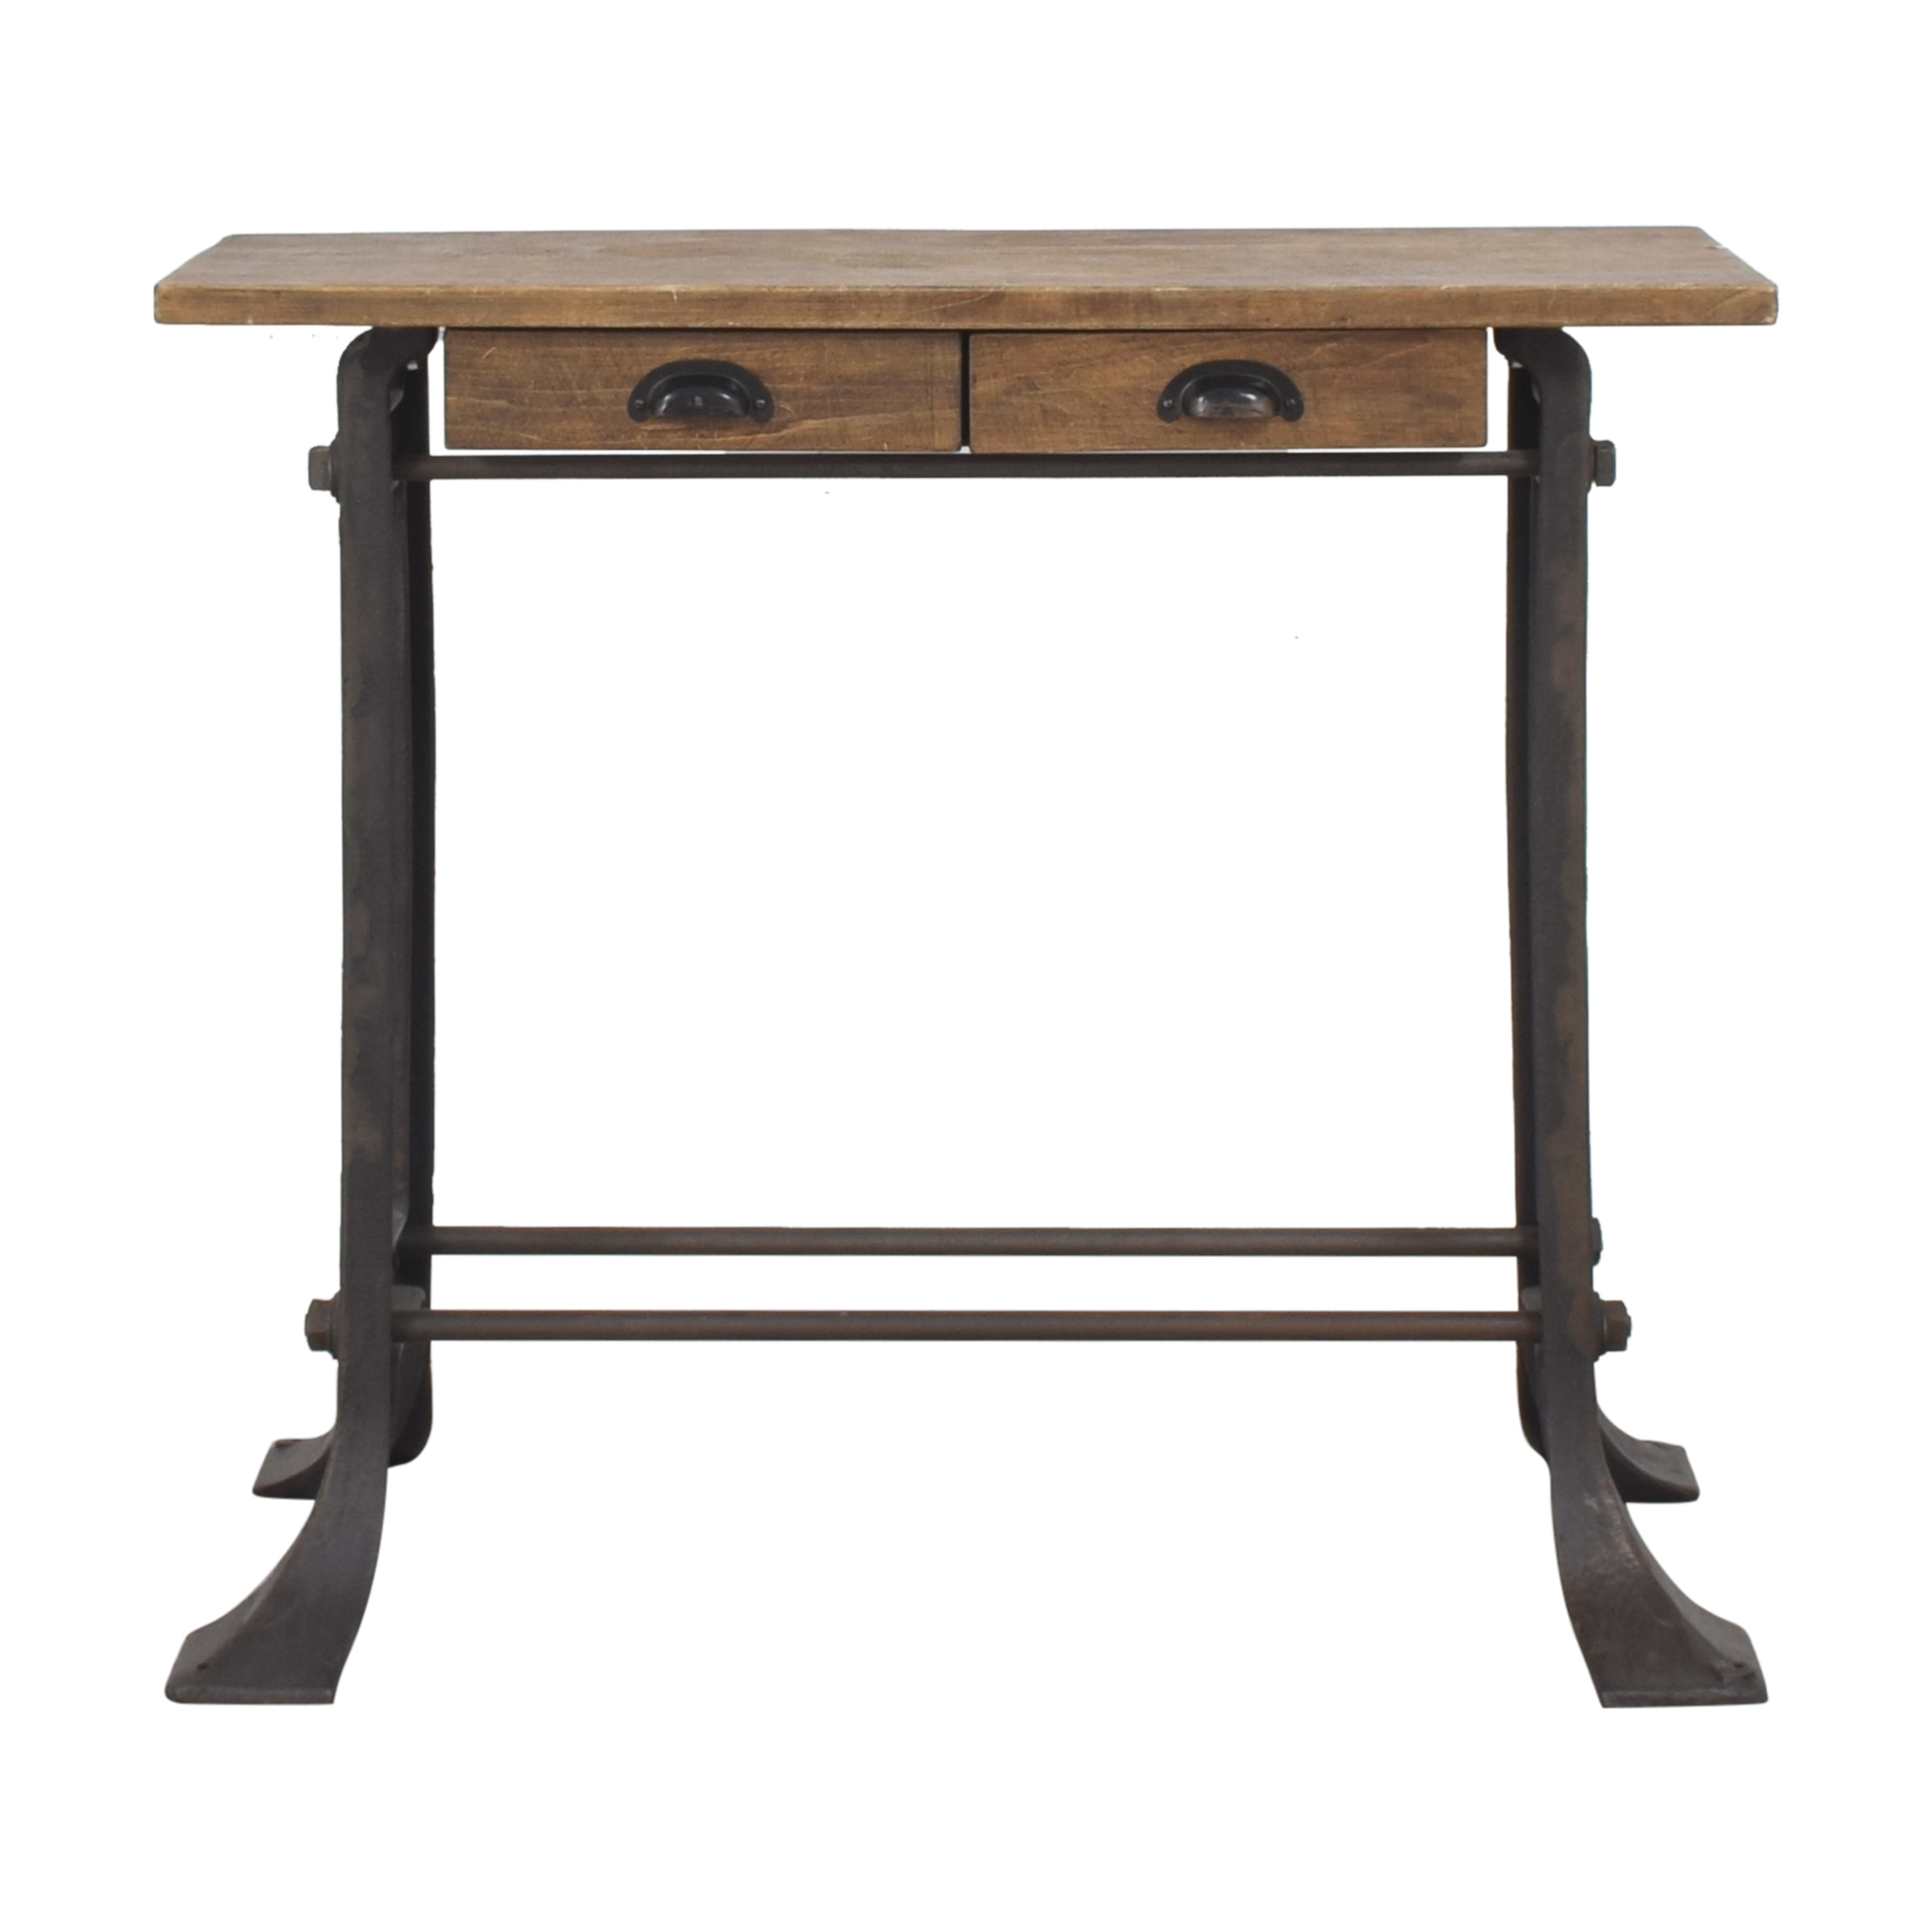 Get Back Get Back Industrial Console Table coupon